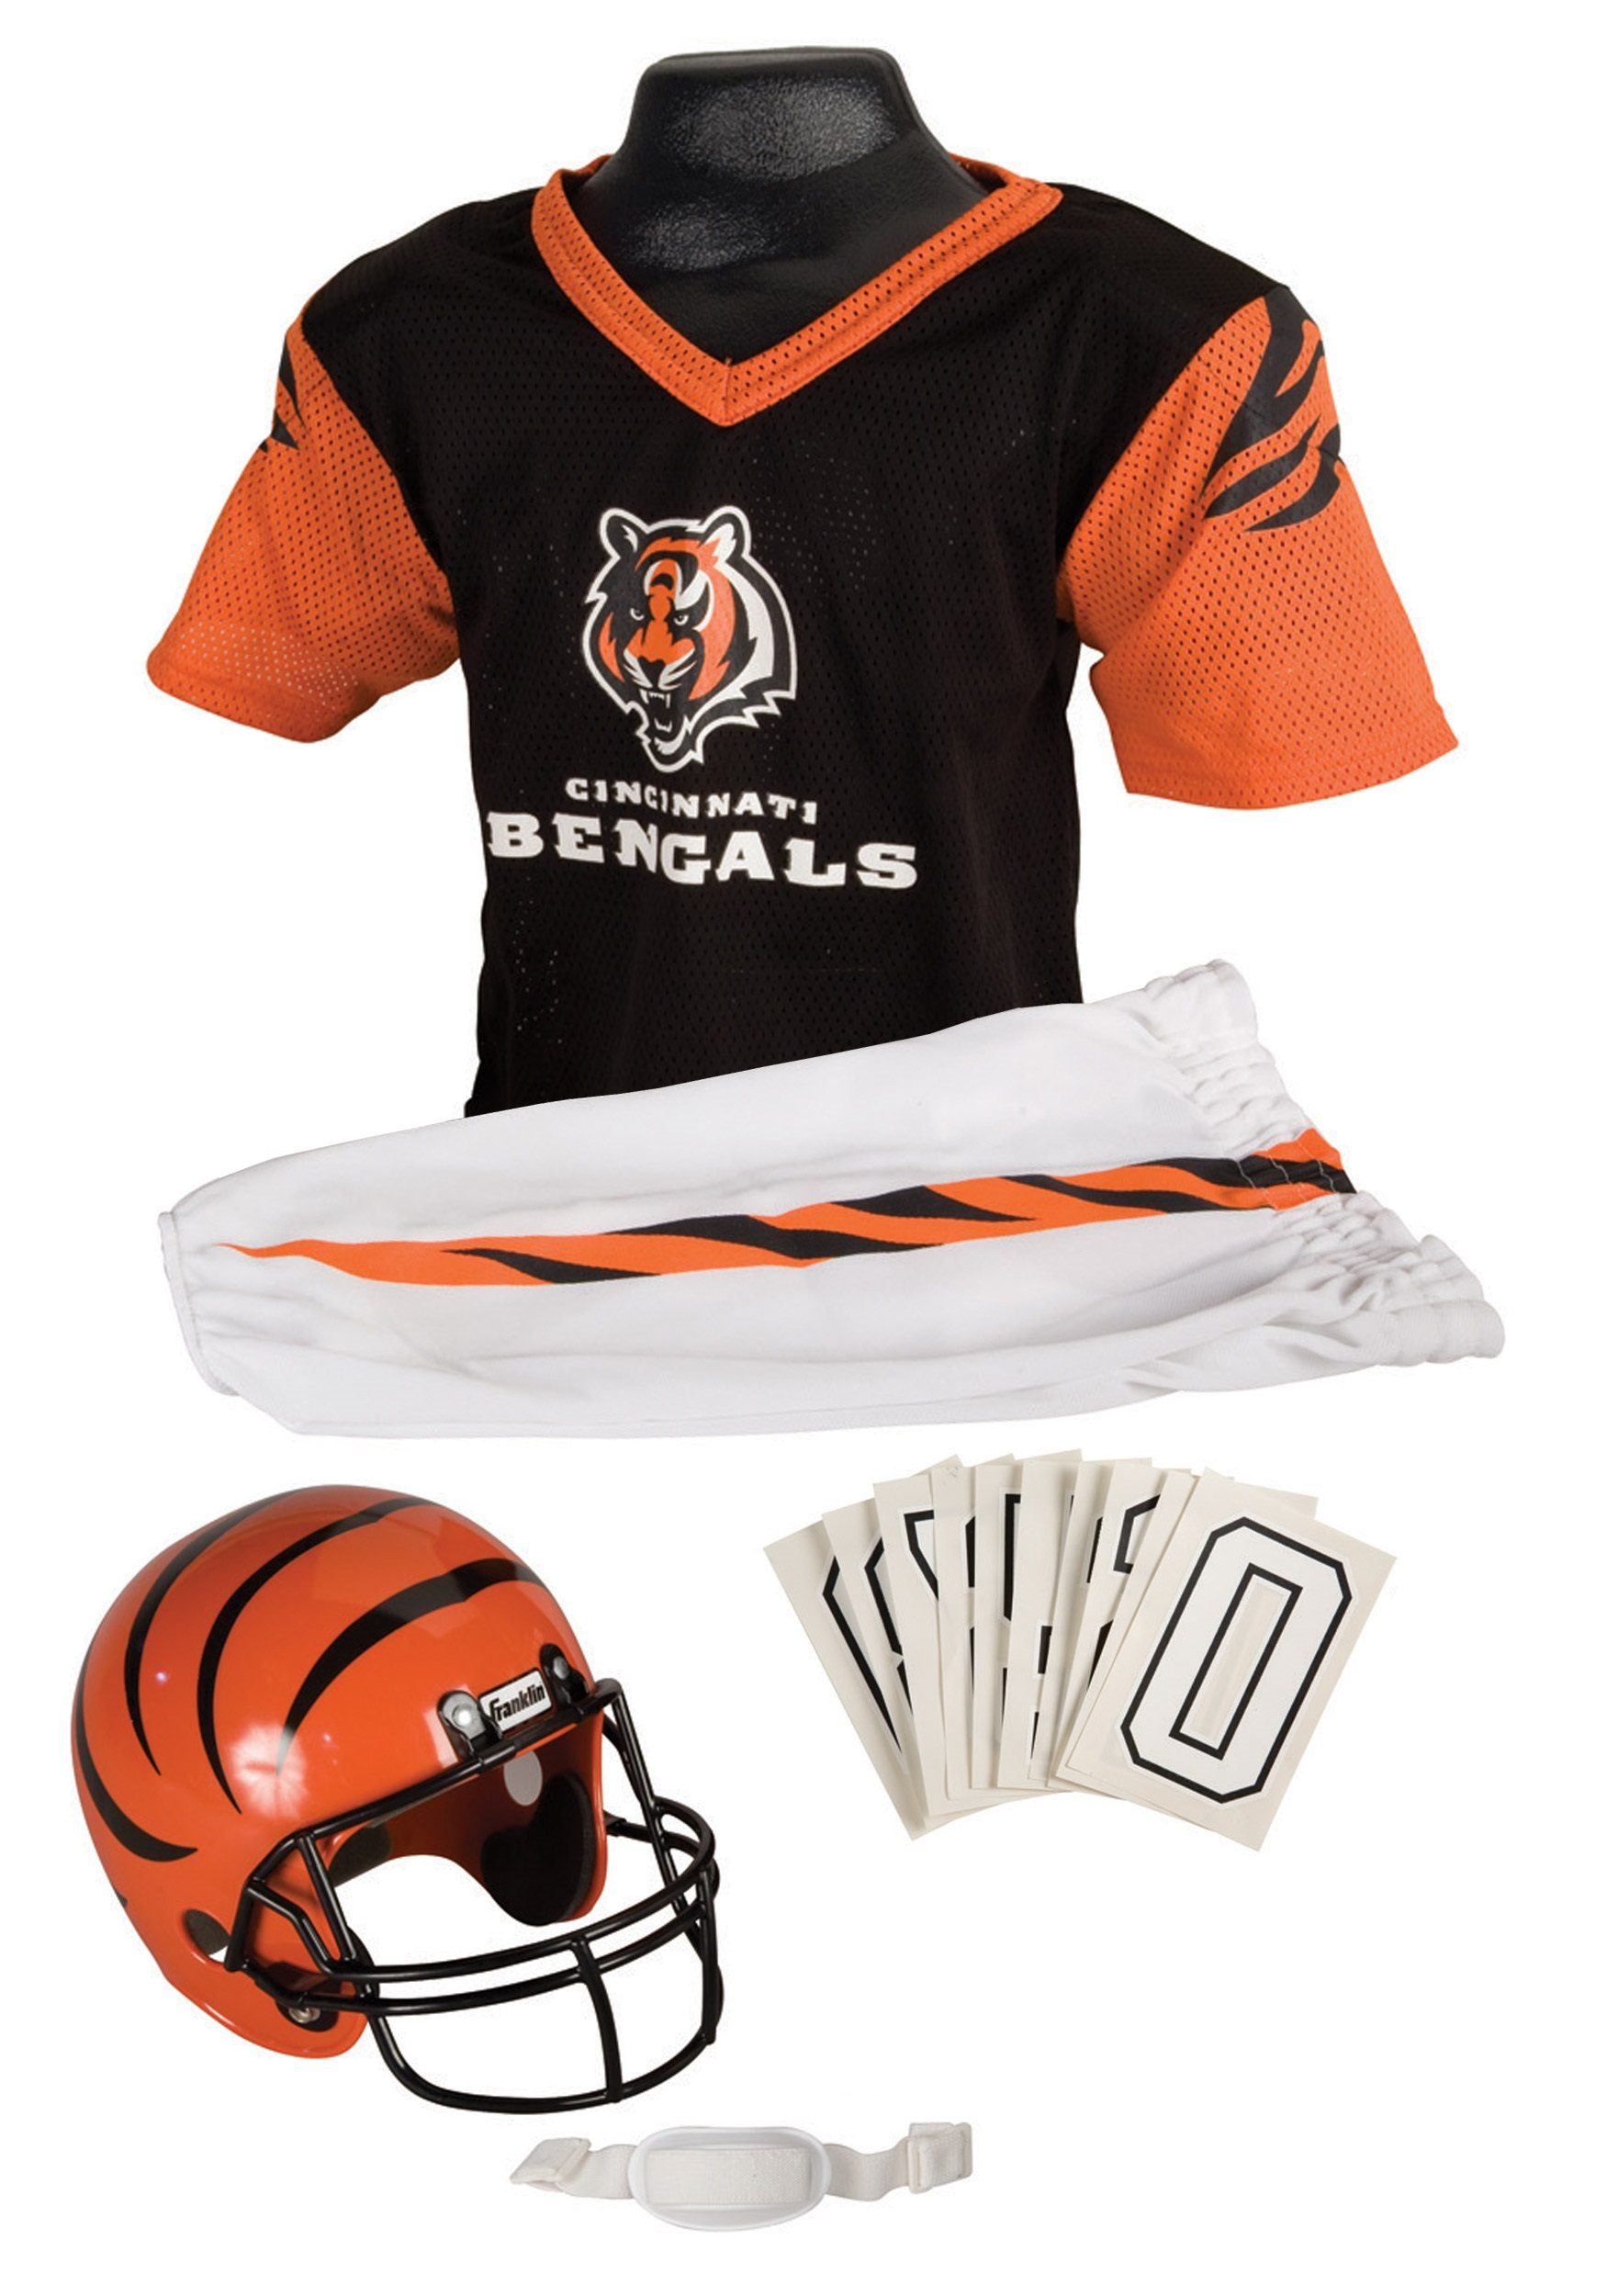 NFL Cincinnati Bengals Uniform Set FA15700F16